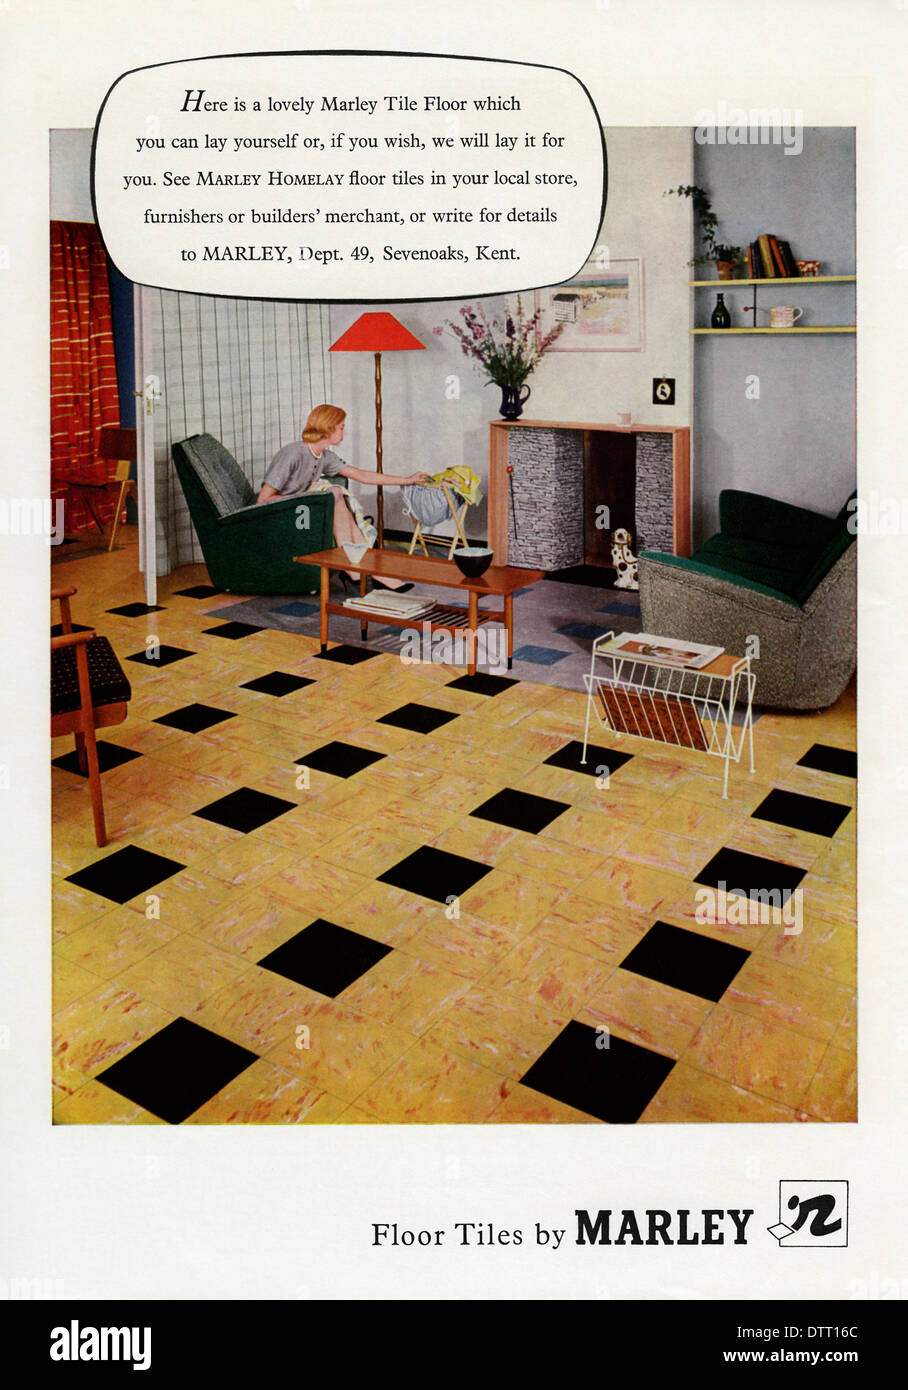 Old advert for marley floor tiles these were hard wearing old advert for marley floor tiles these were hard wearing laminated tiles the advert appeared in a magazine in 1956 dailygadgetfo Images